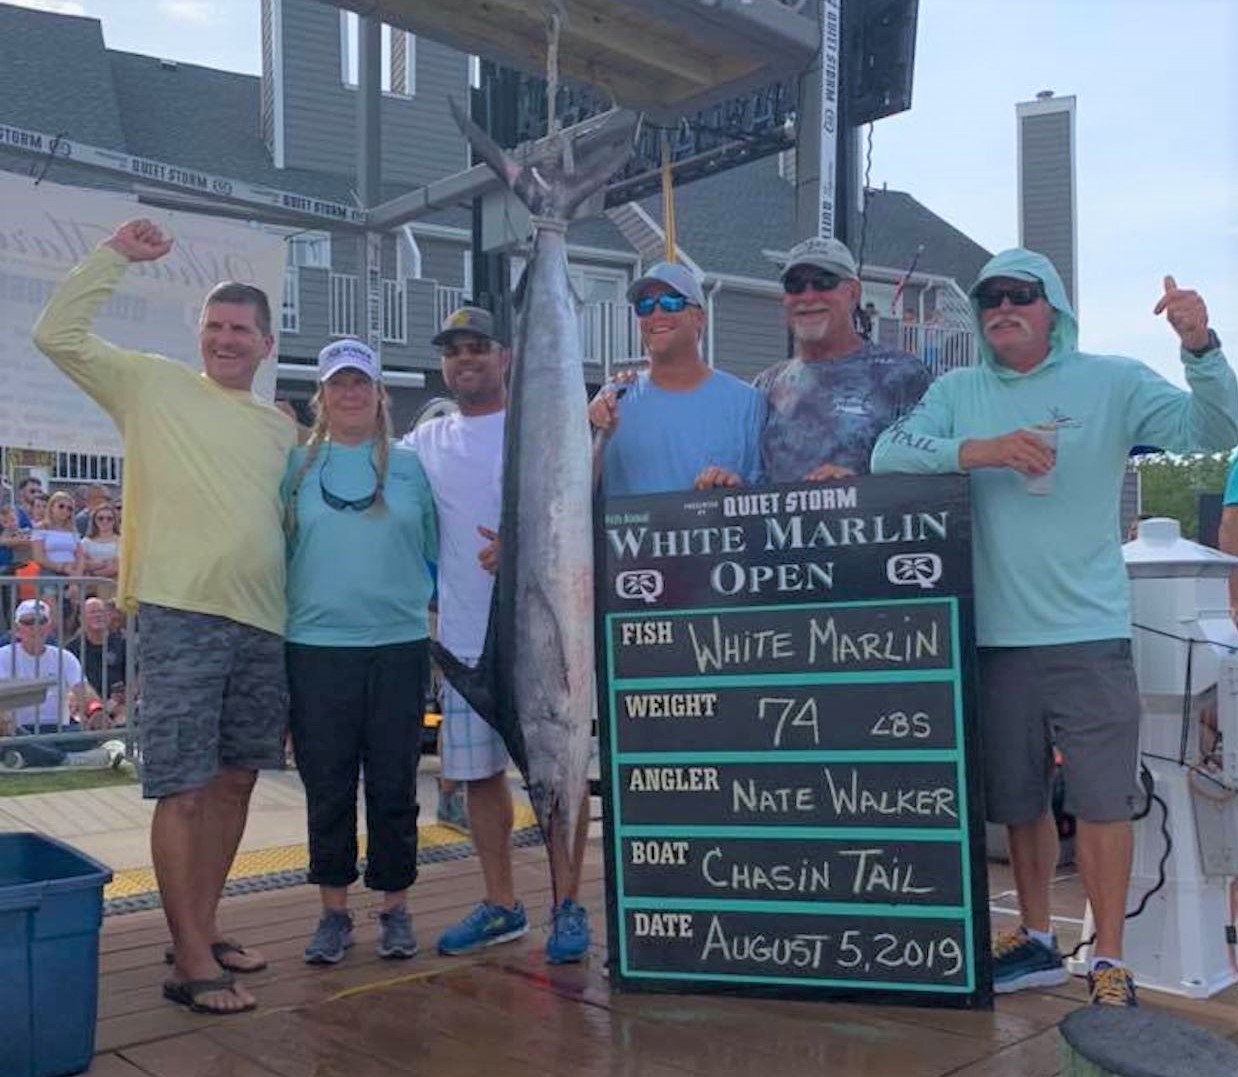 White Marlin Open Off To Fast Start With Hot Fishing, Active Boat Days